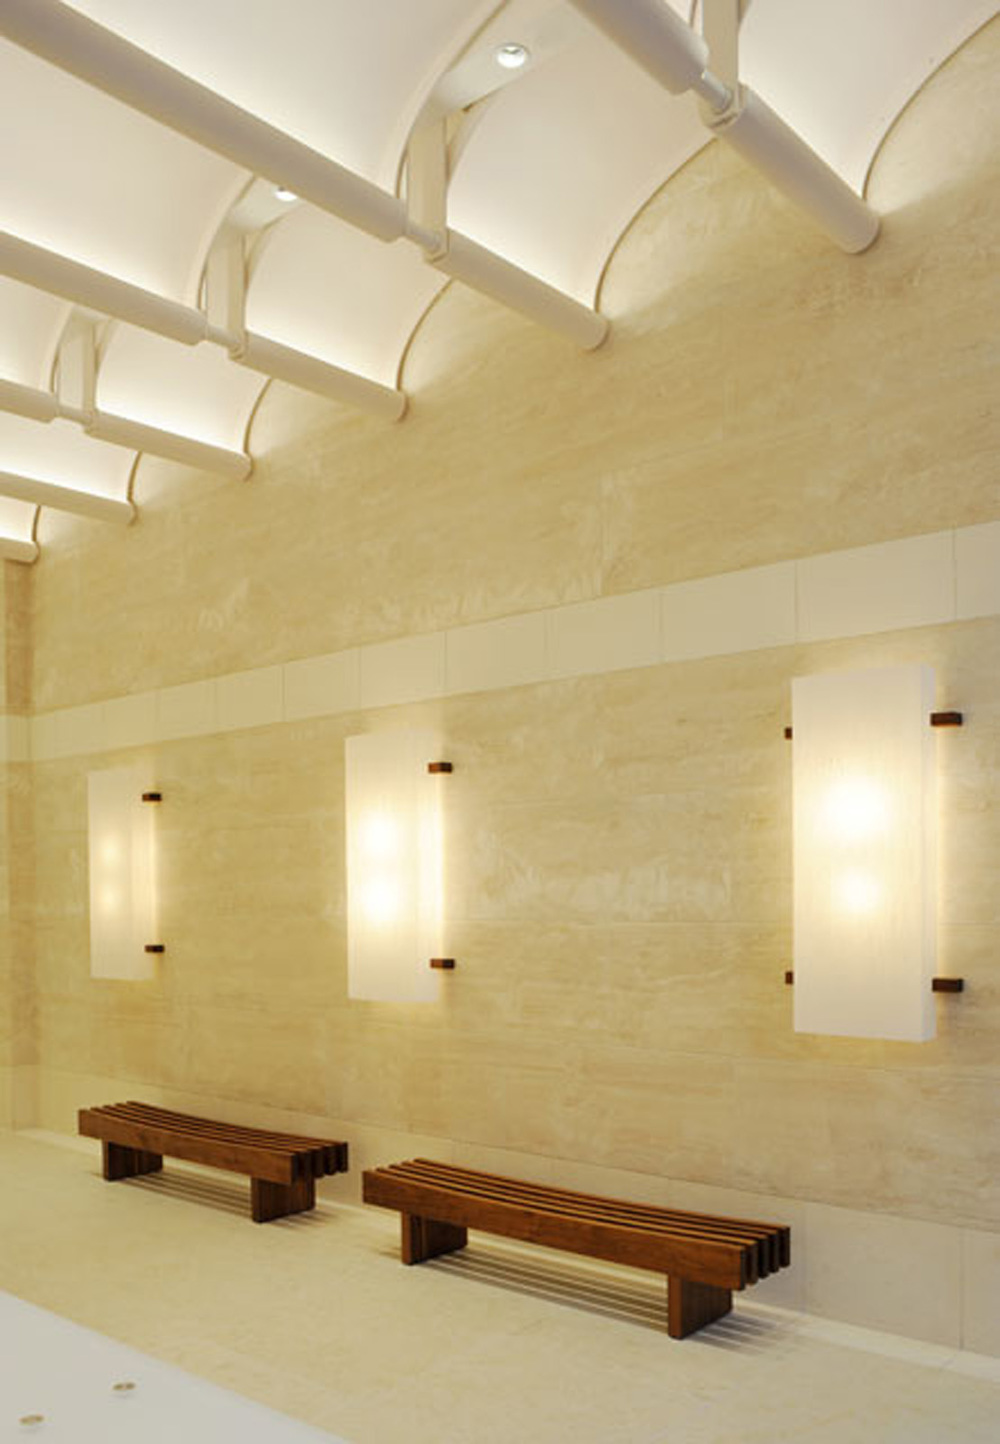 1080_MADISON_AVE_LOBBY_PIC_2_MAIN H.jpg